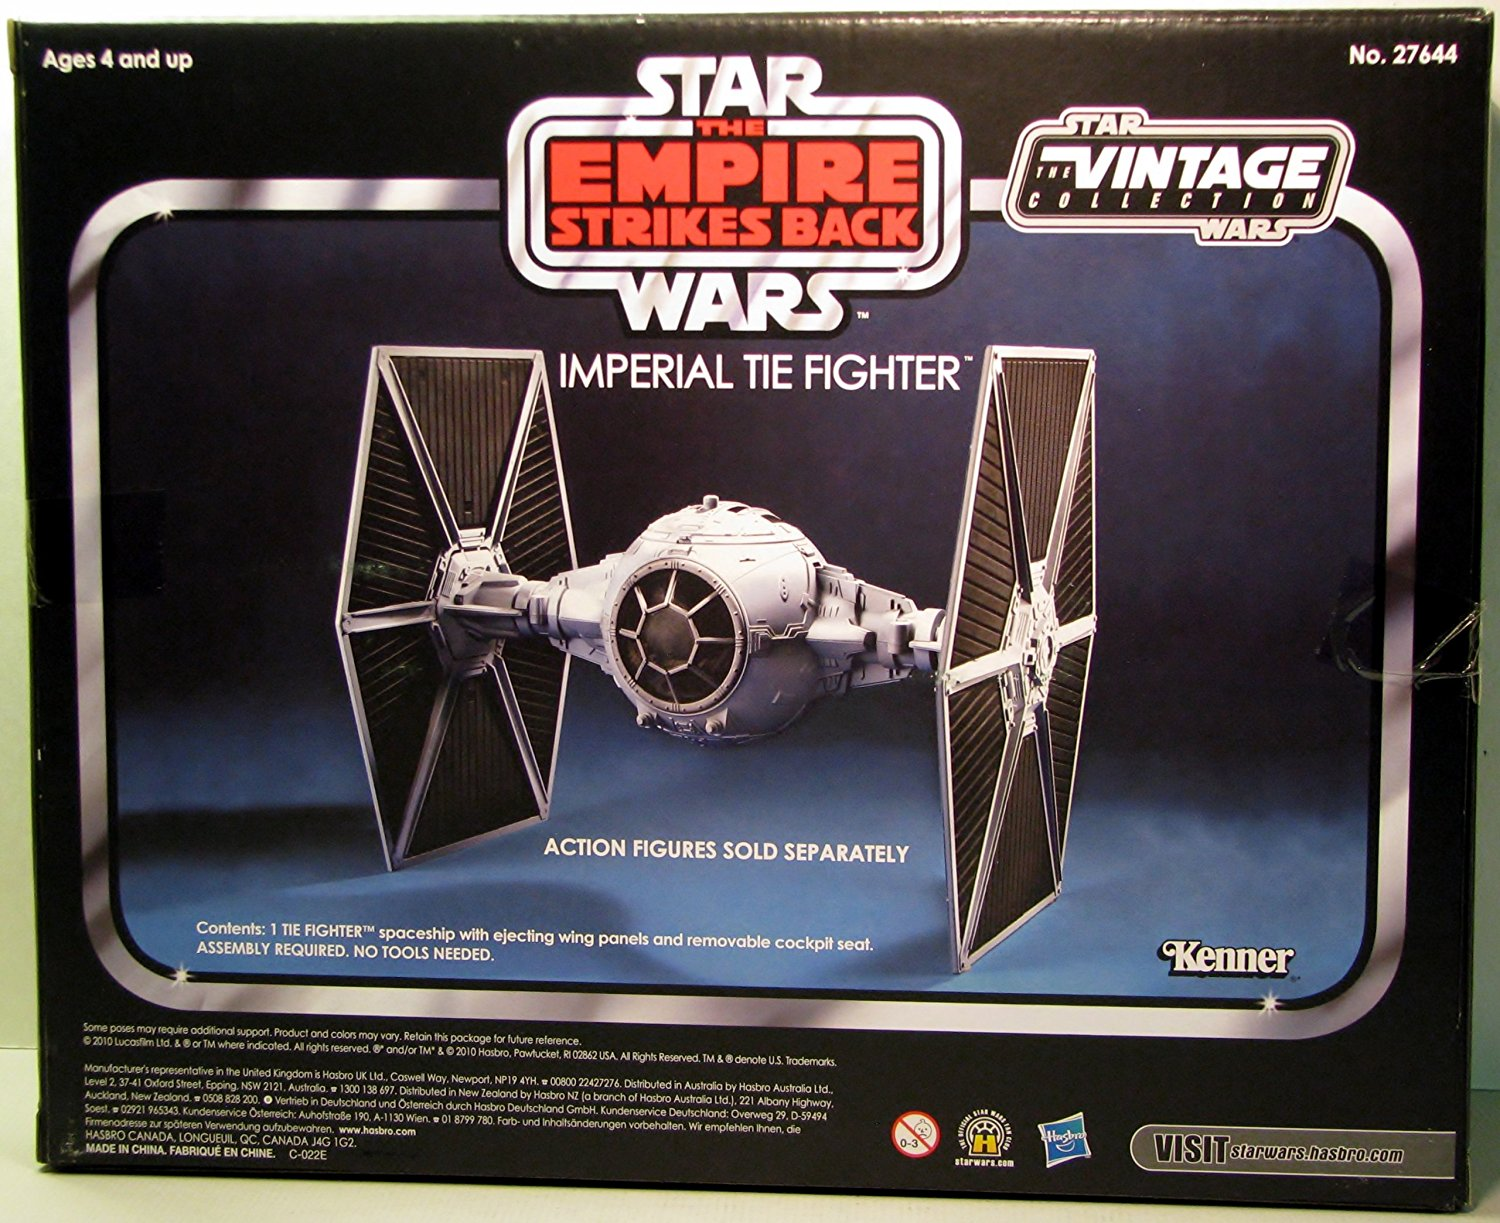 Star Wars Imperial Tie Fighter - Target Exclusive